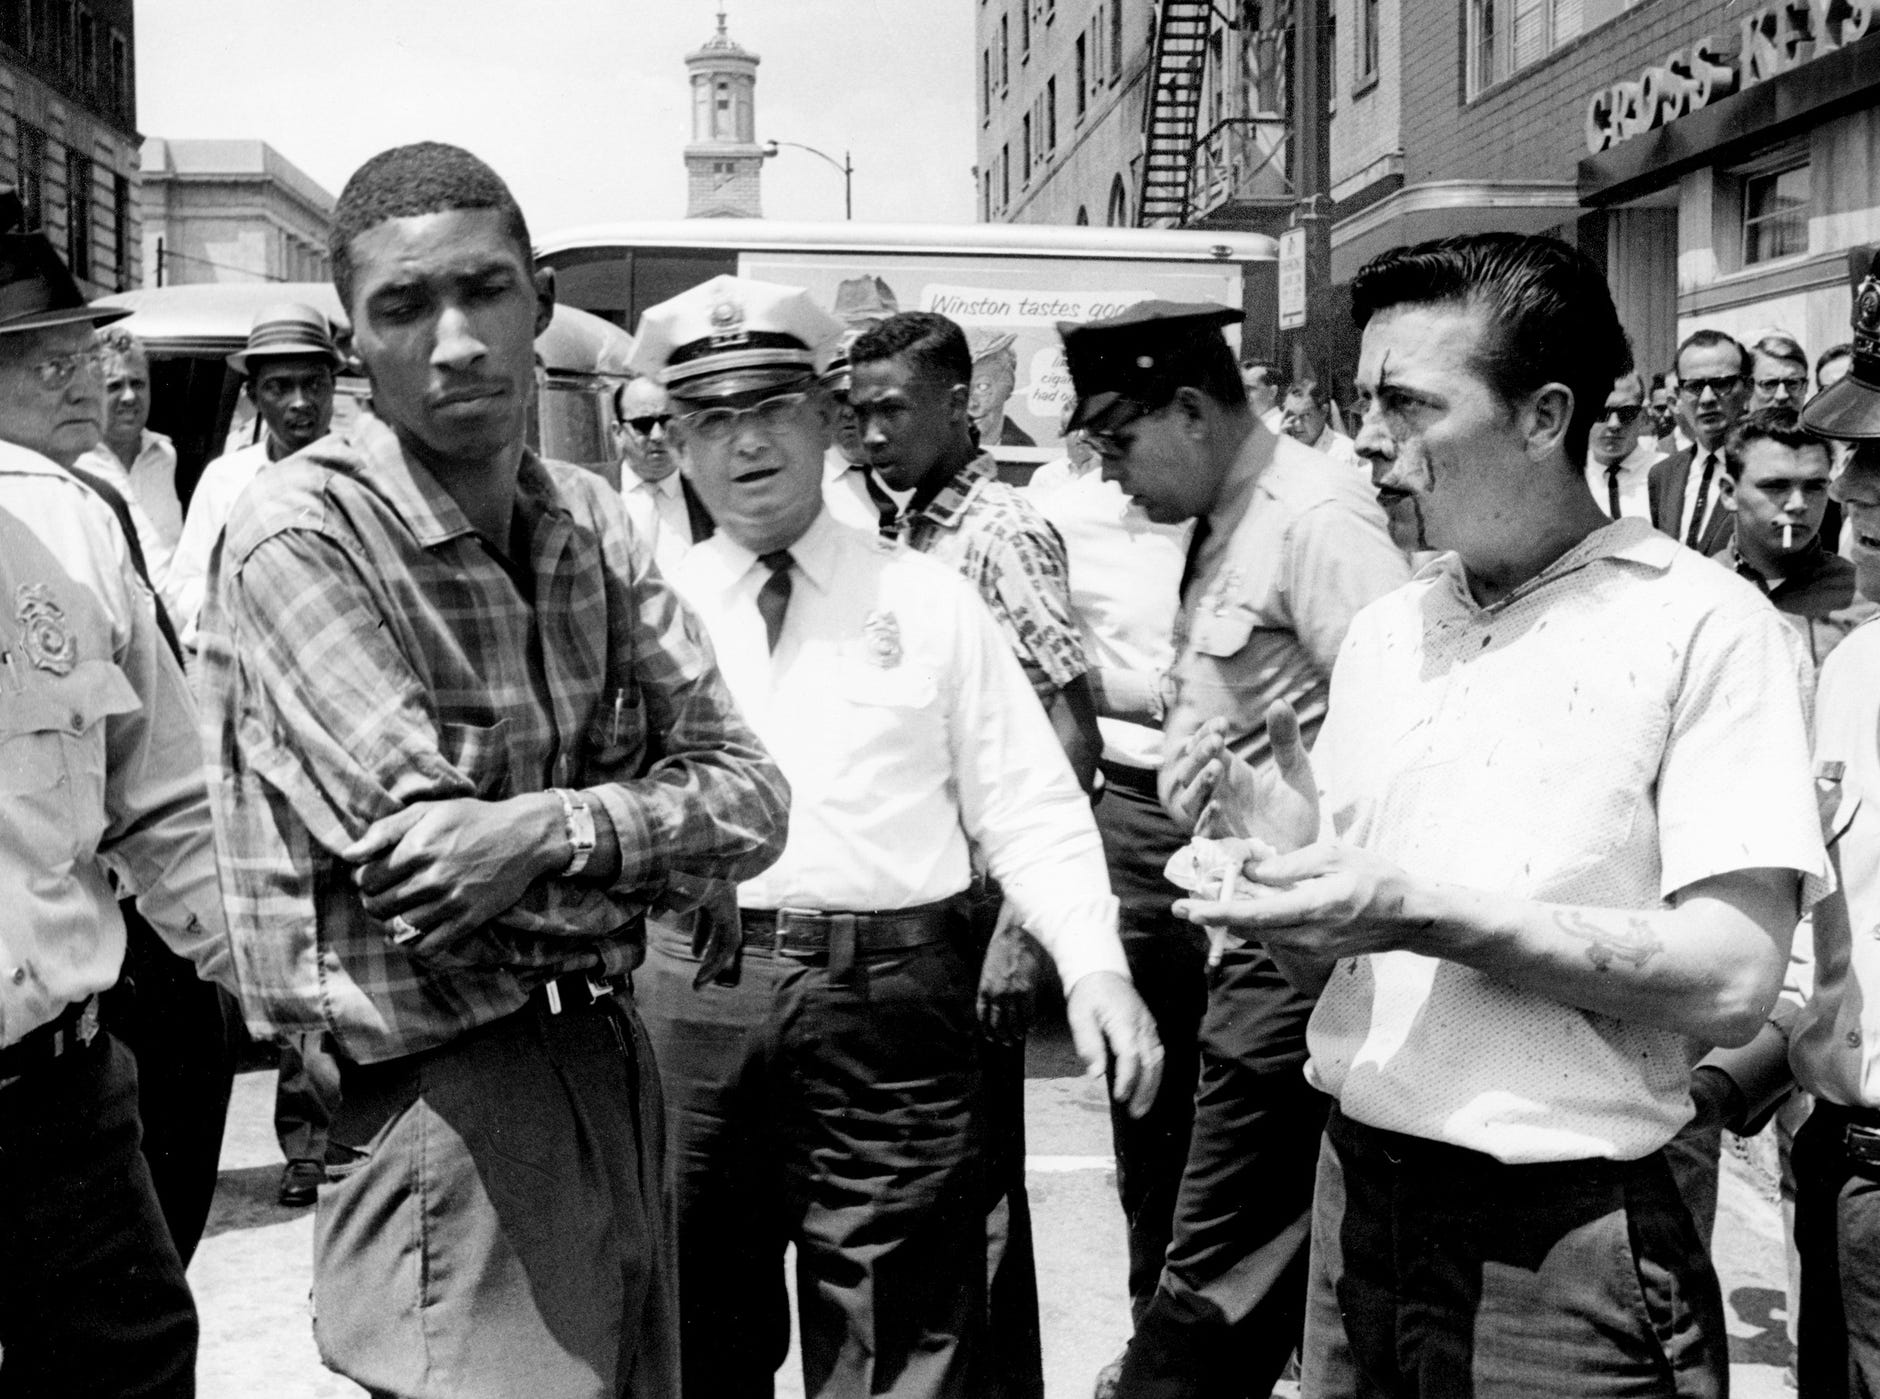 Metro police arrest a marcher and a downtown spectator after a scuffle developed during a demonstration May 8, 1963. Joseph Frank Tanksley, right, was cut after falling into a mirror beside Cross Keys Restaurant. Tanksley and Vencen Horsley, left, were charged with fighting and disorderly conduct. Lt. C.P. Lynch, center, was the arresting officer.